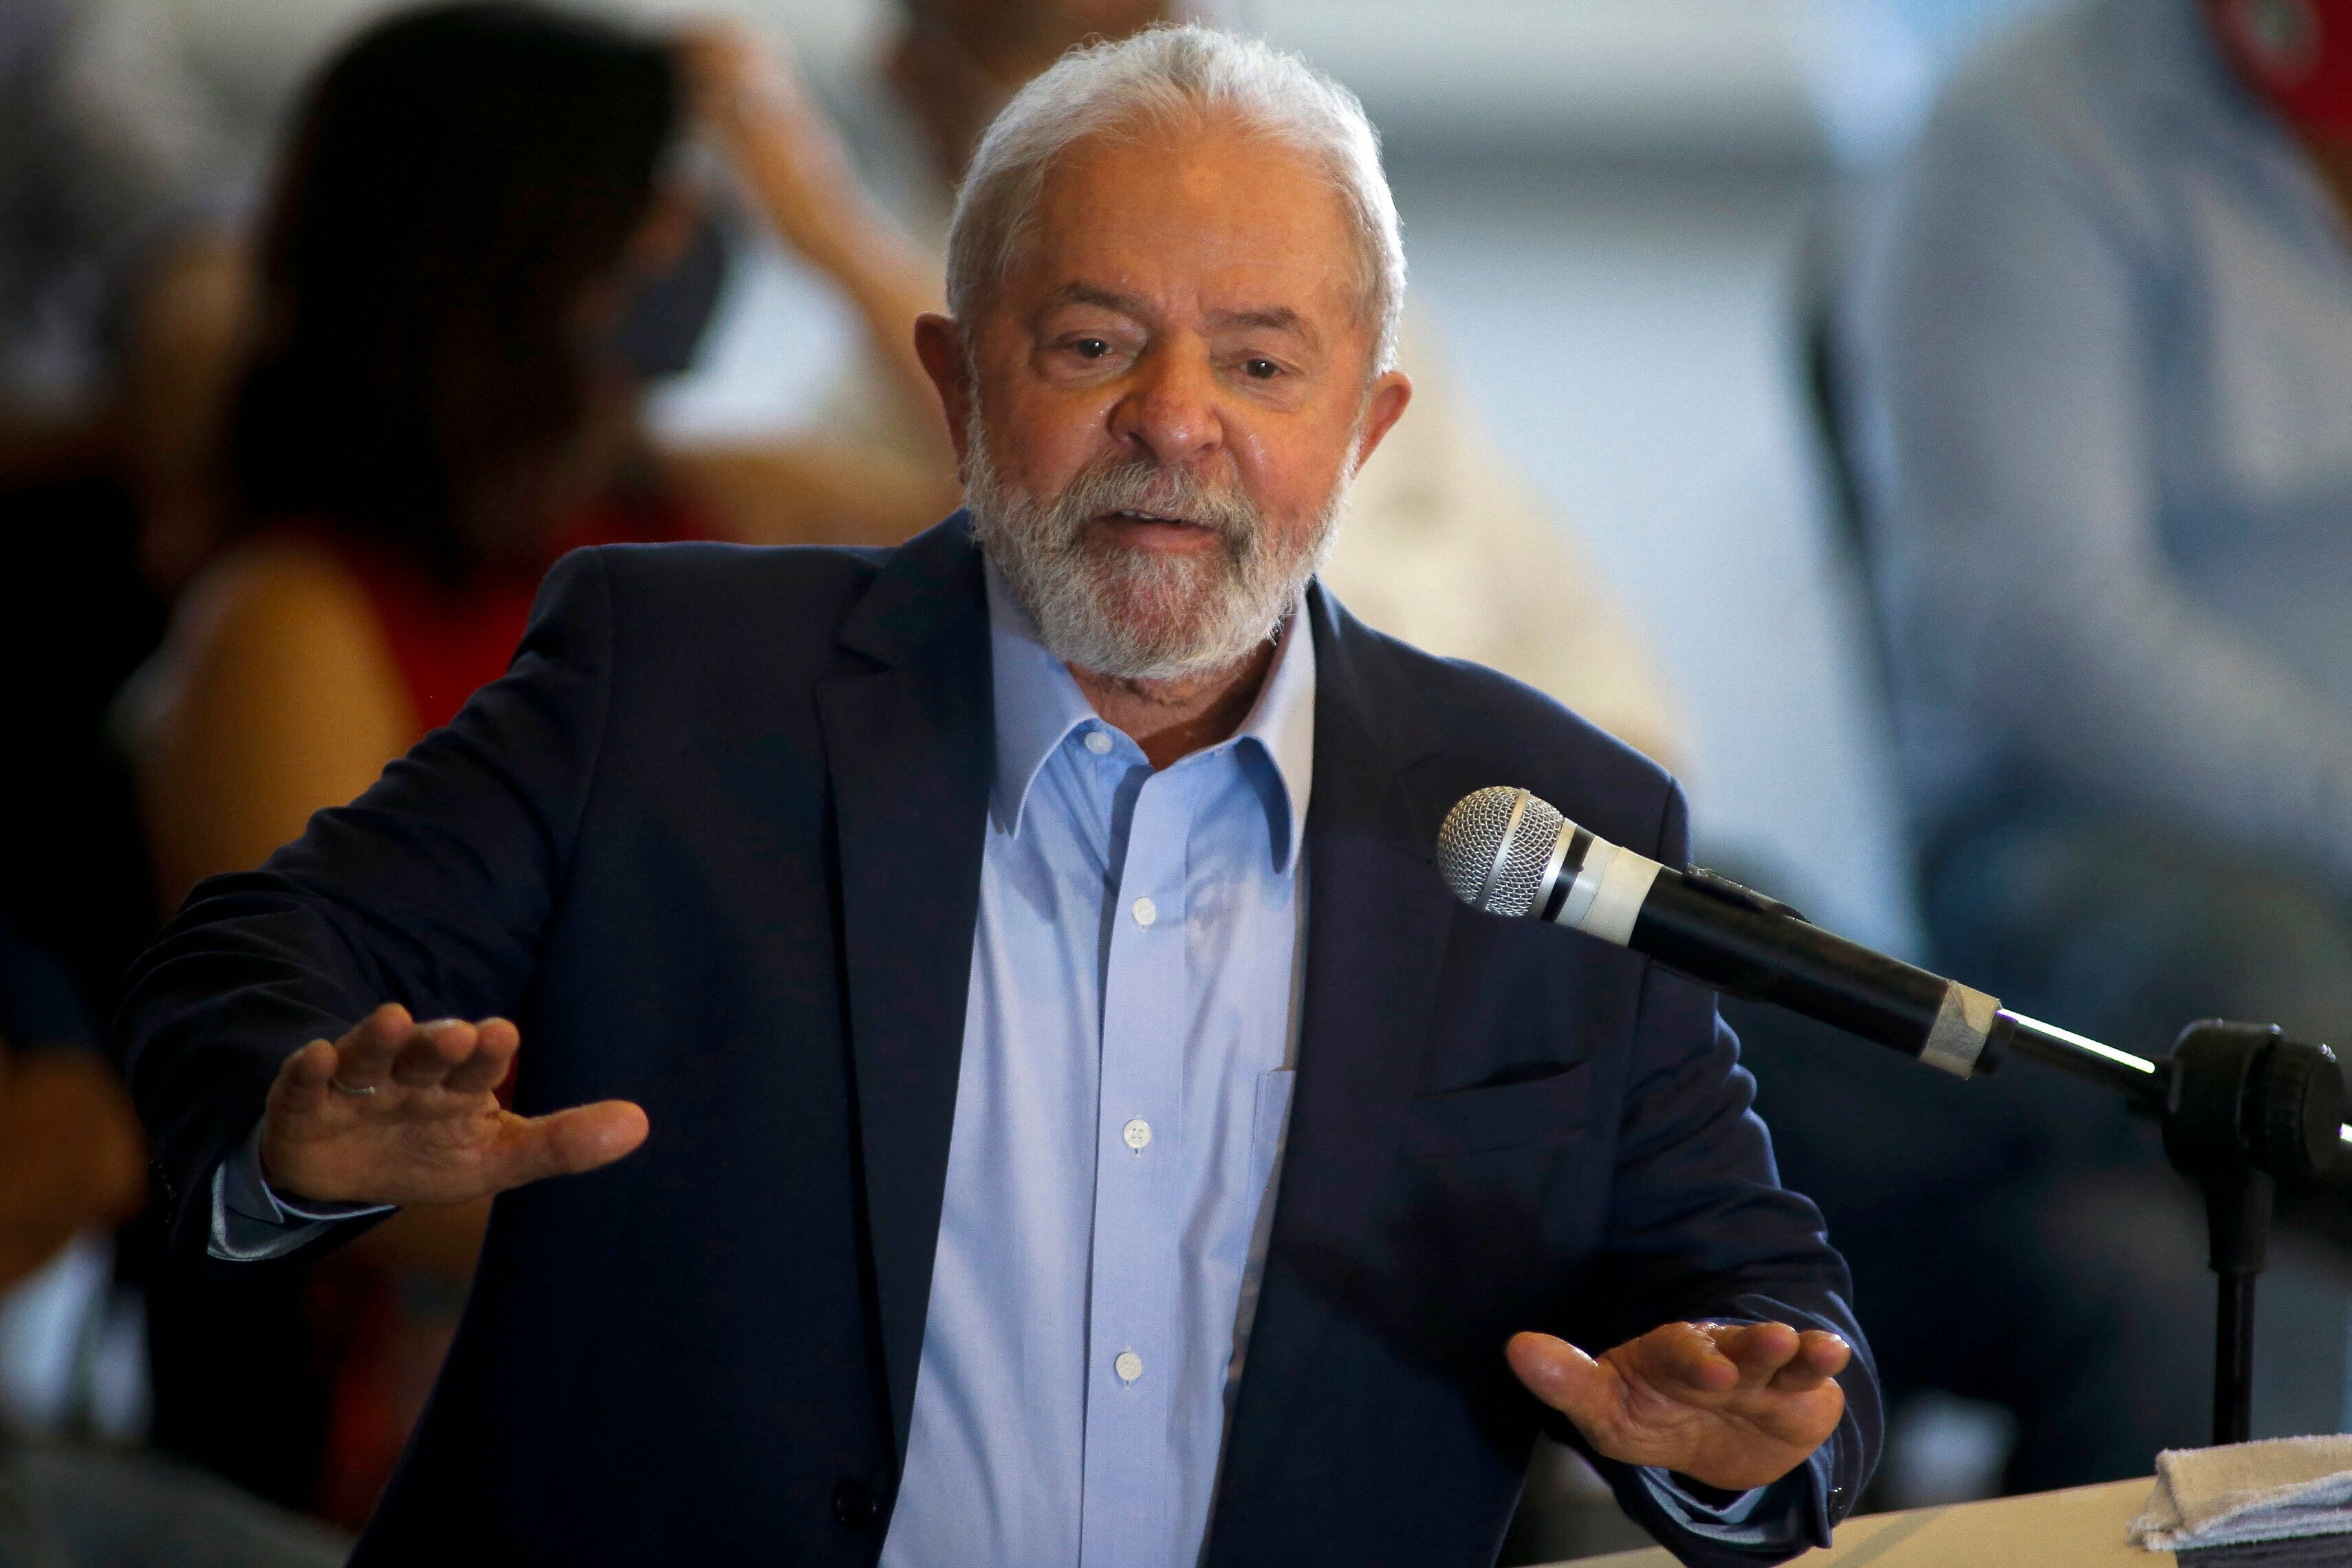 Former leftist President Lula da Silva is likely to run against Bolsonaro in 2022, and early polls have suggested that da Sil